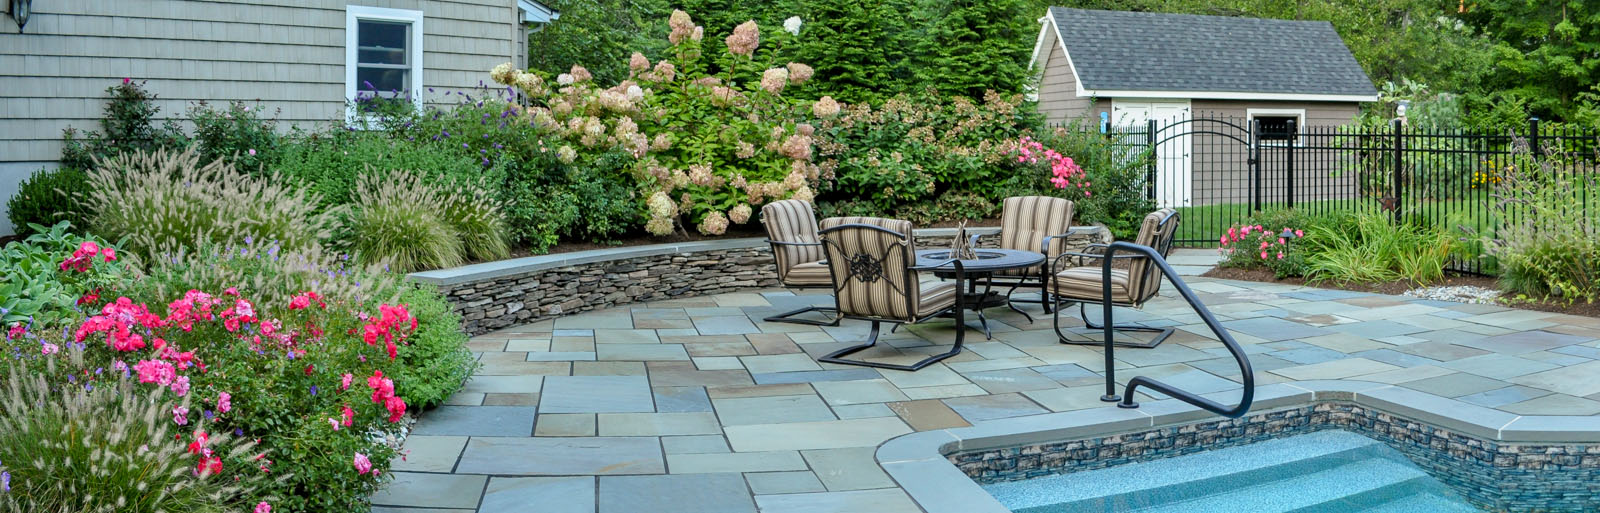 bluestone pool patio and pool landscaping